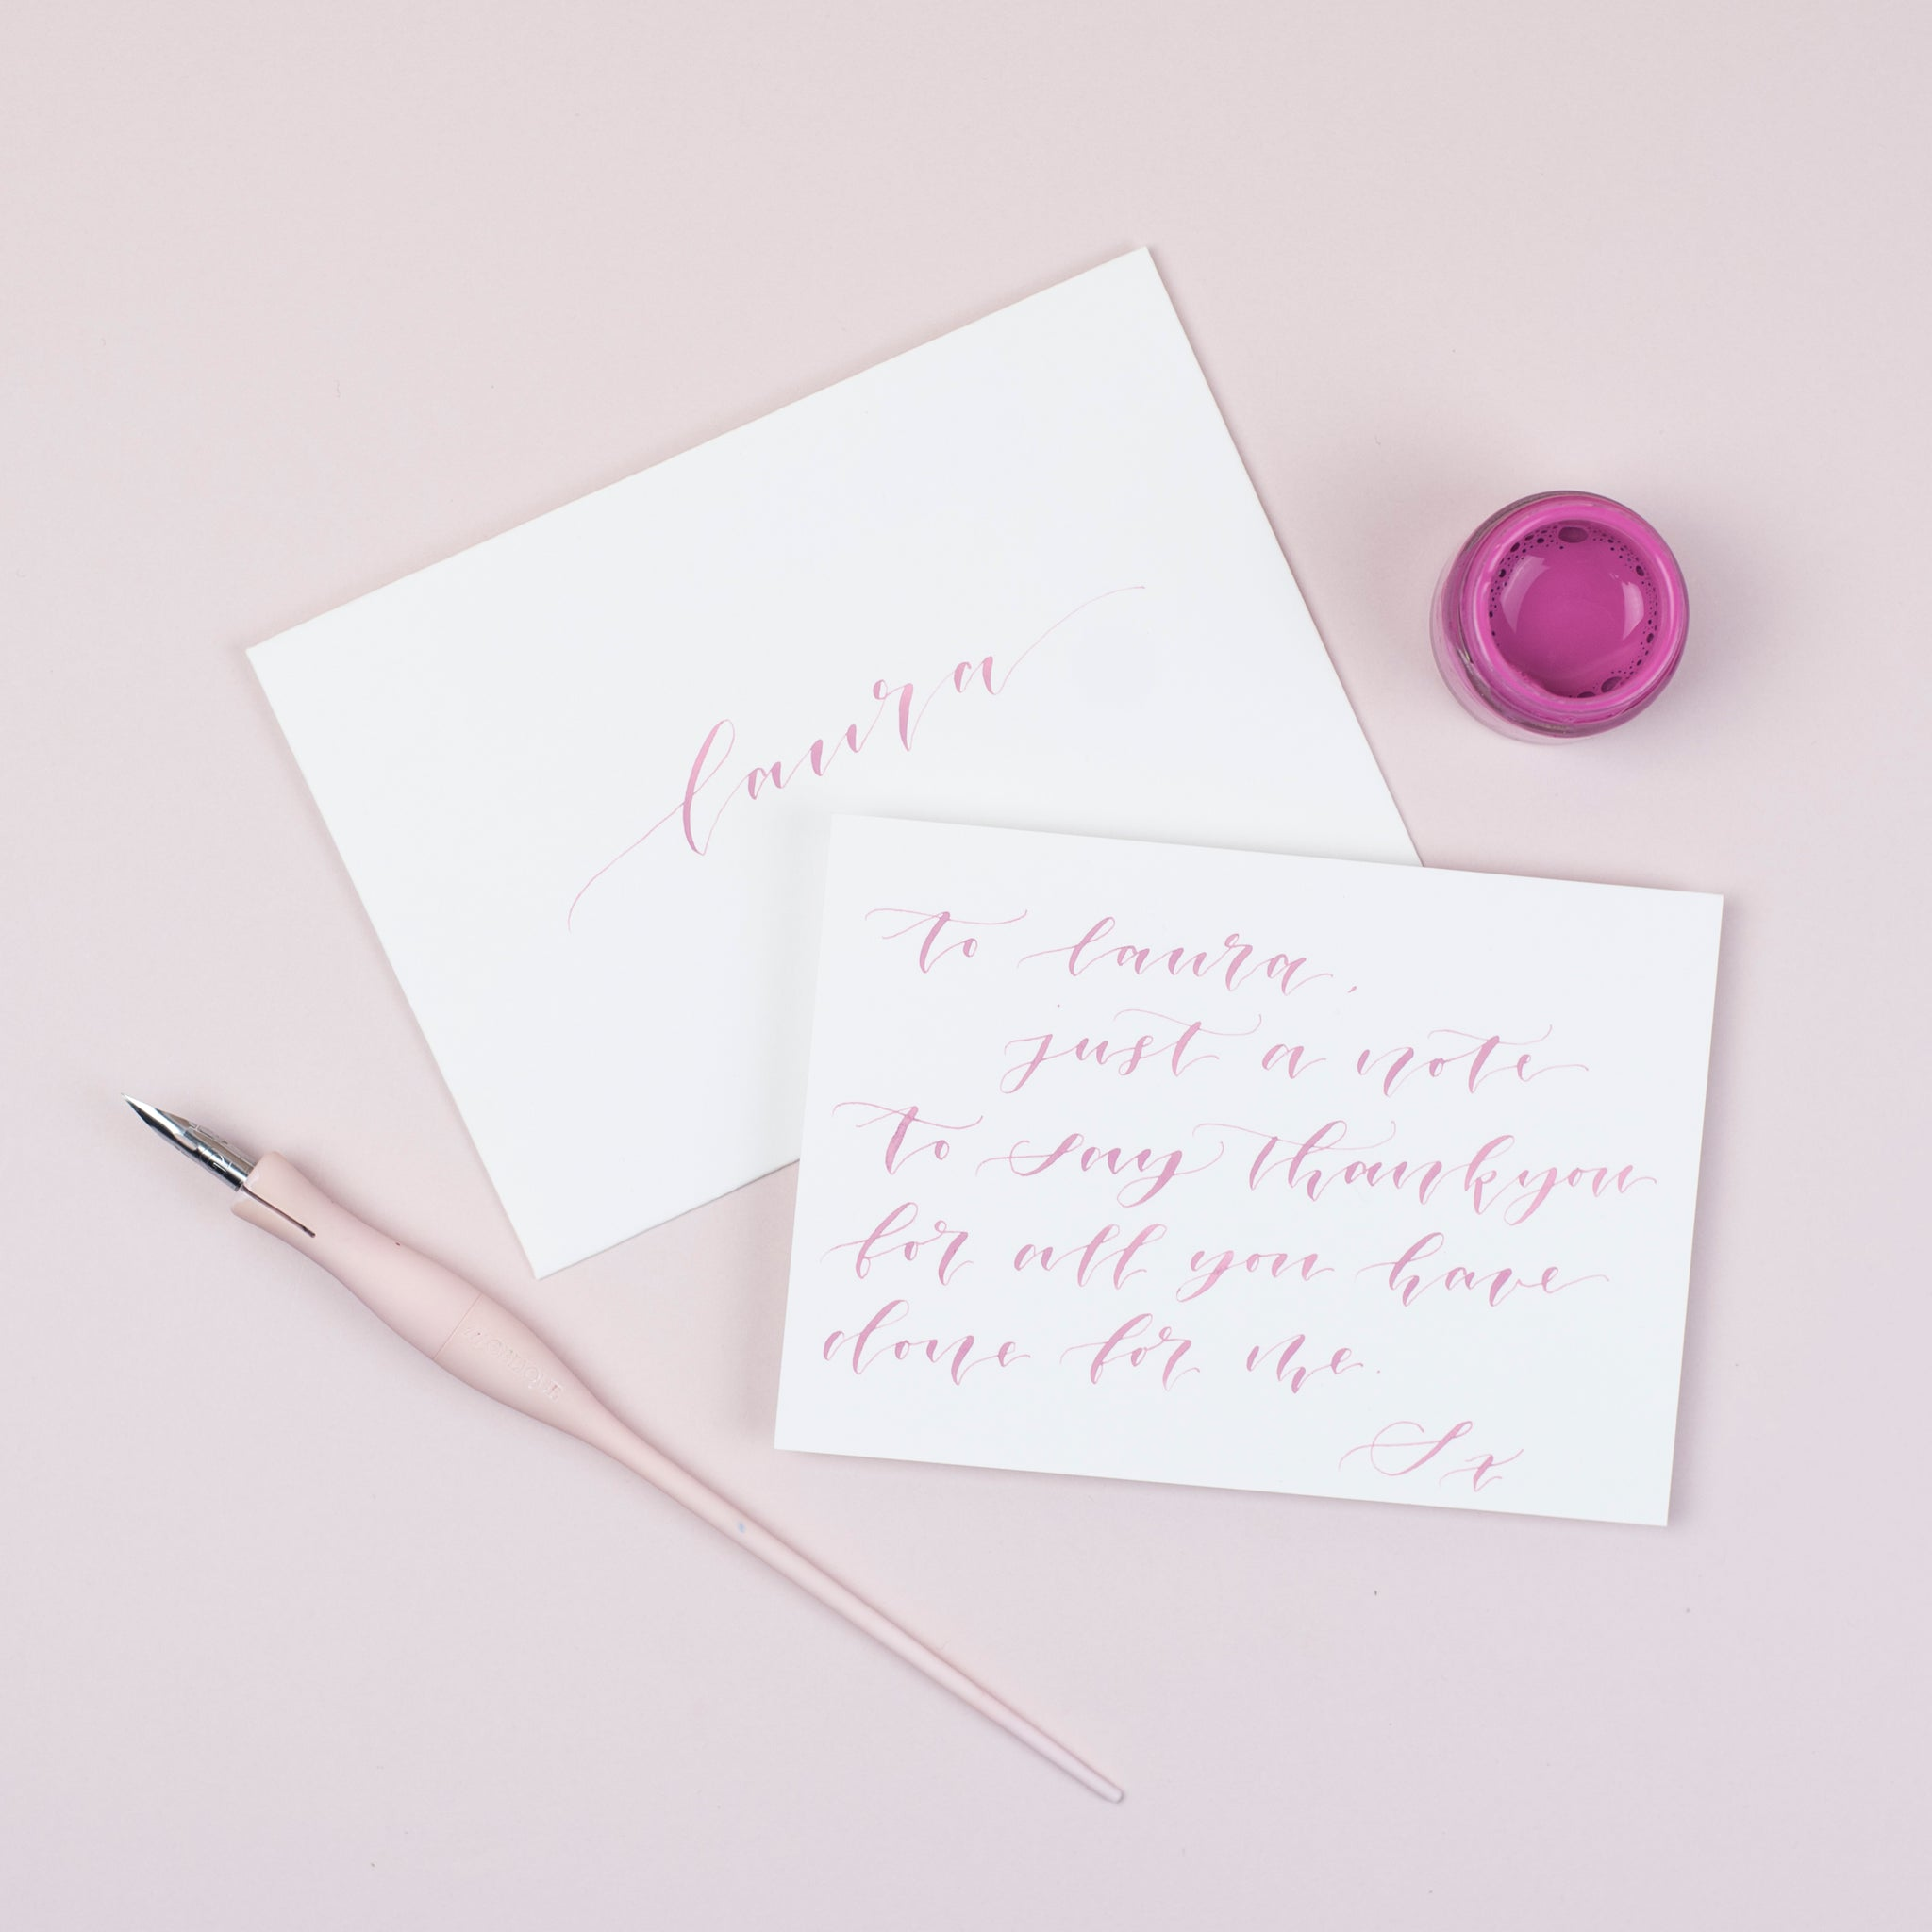 Luxury pale pink notecards and envelopes